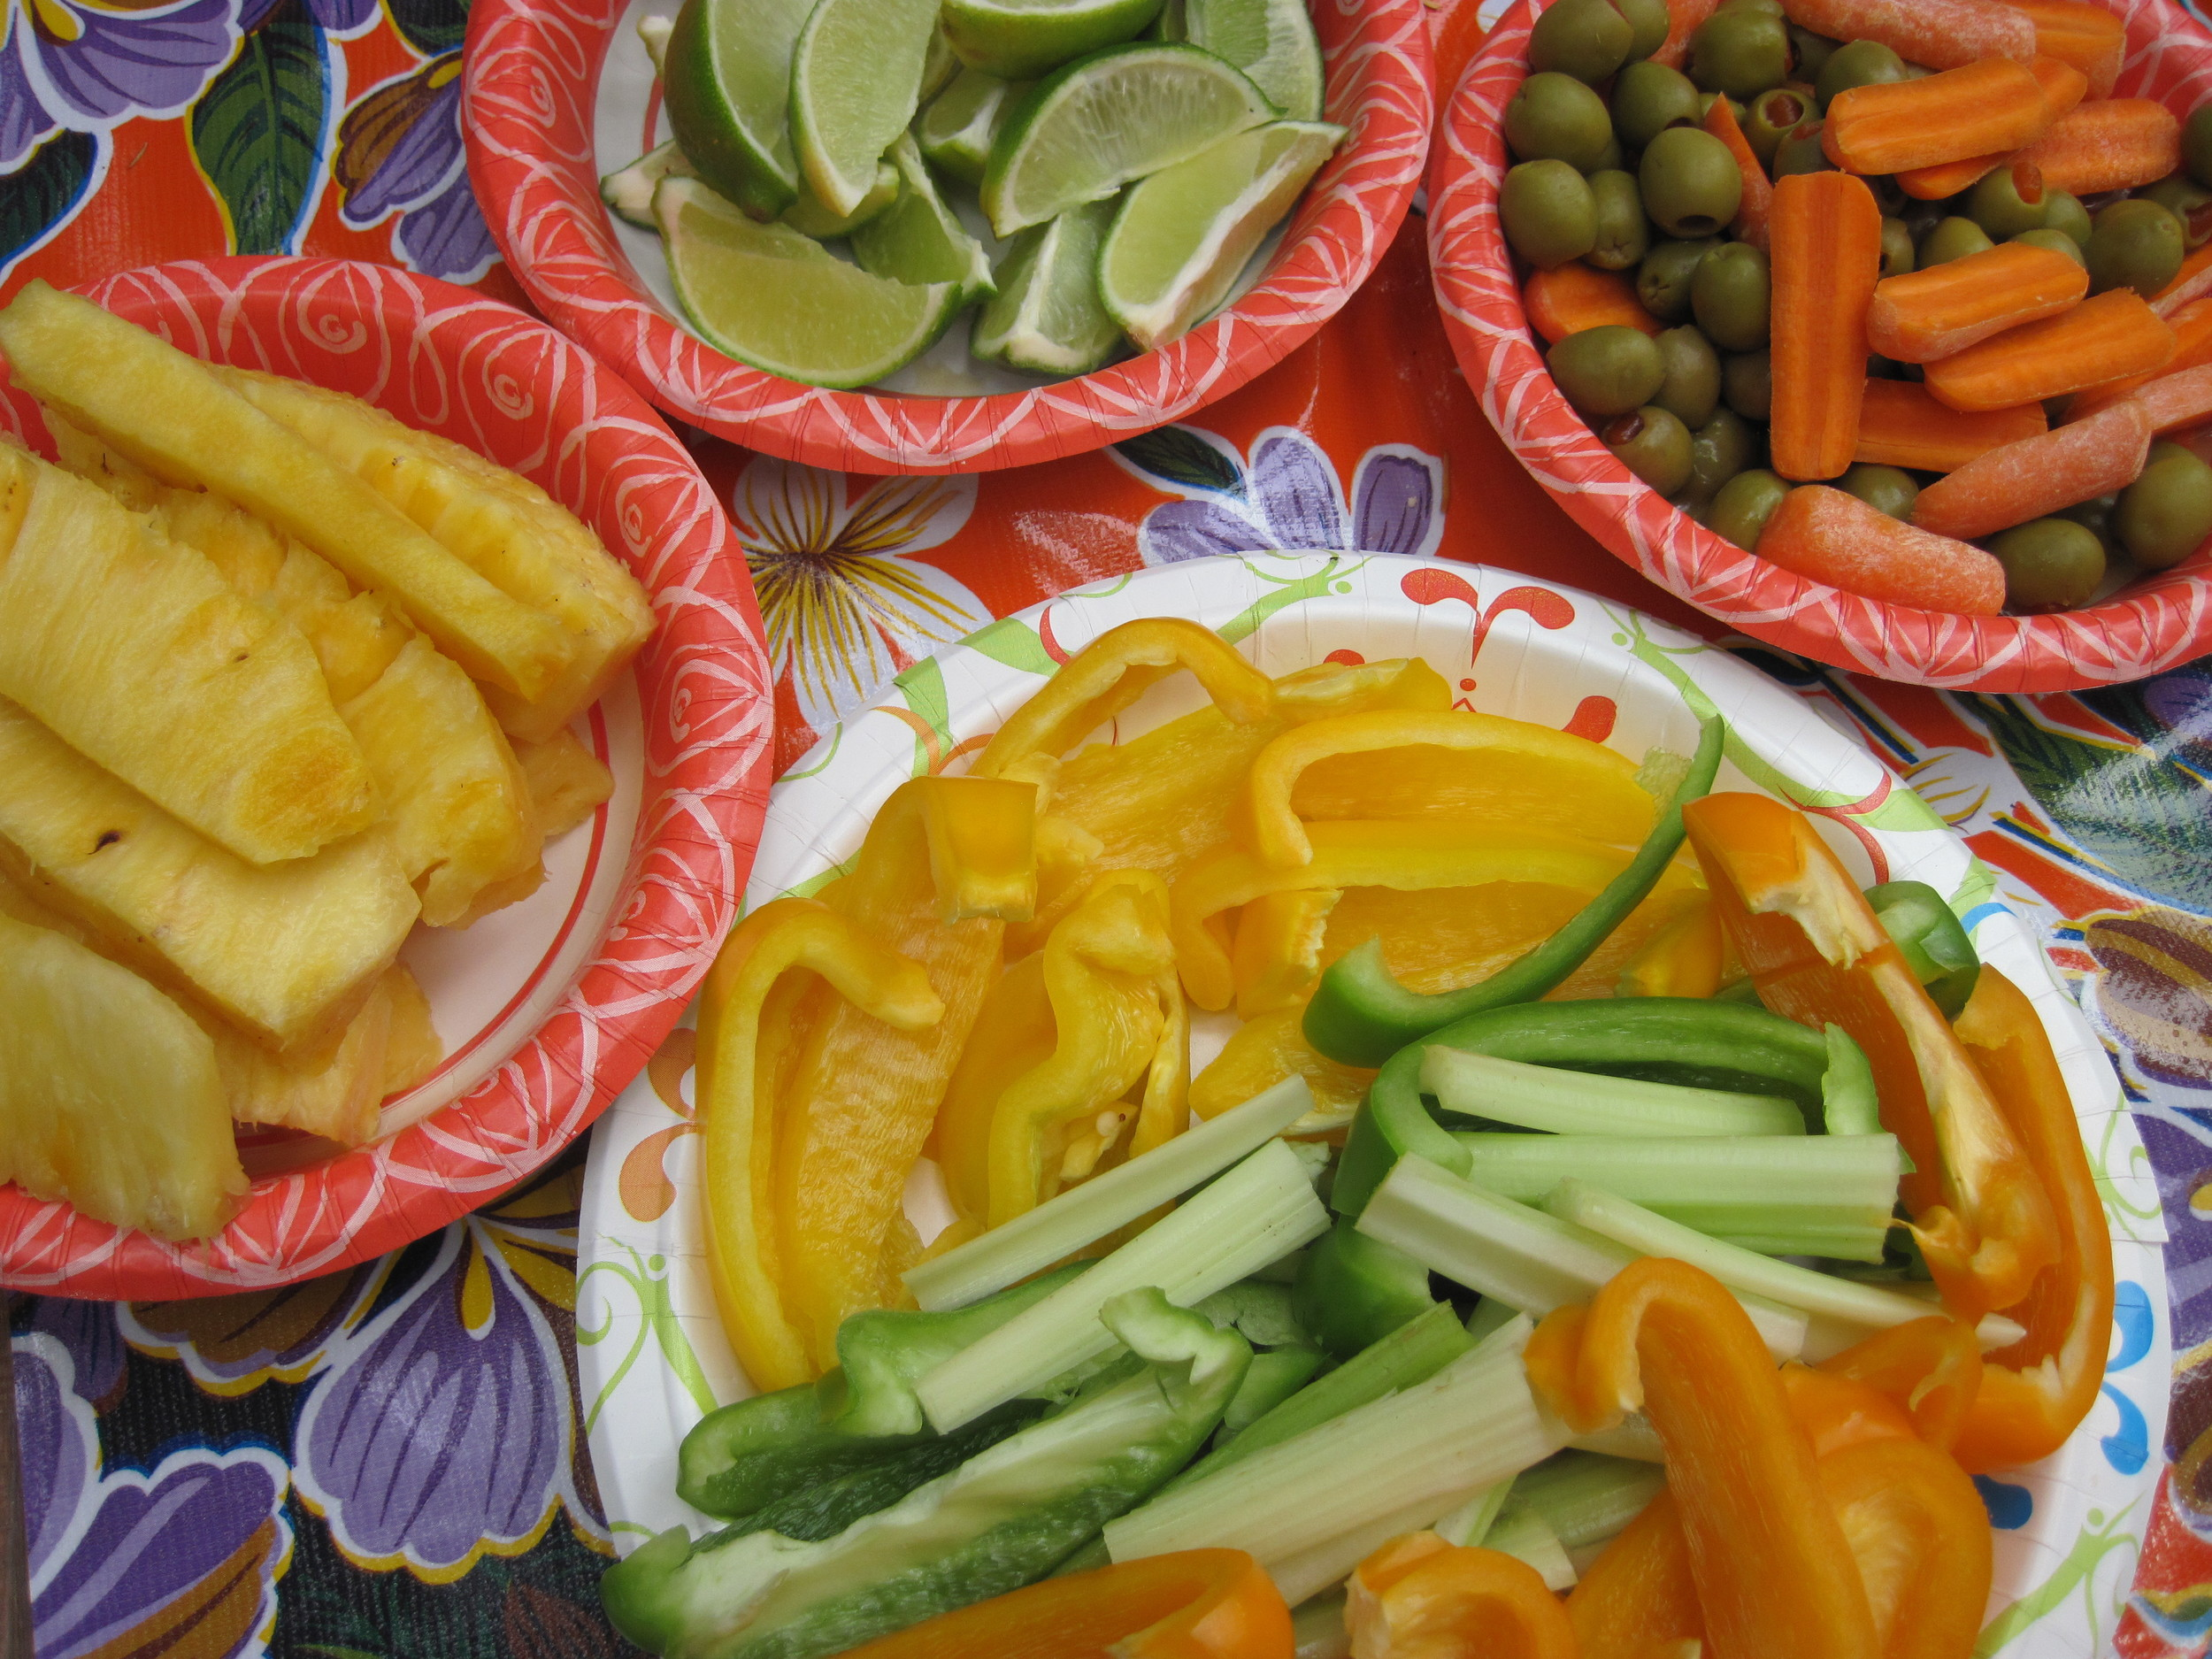 Fresh pineapple and an assortment of veggies & lime slices for the tacos.